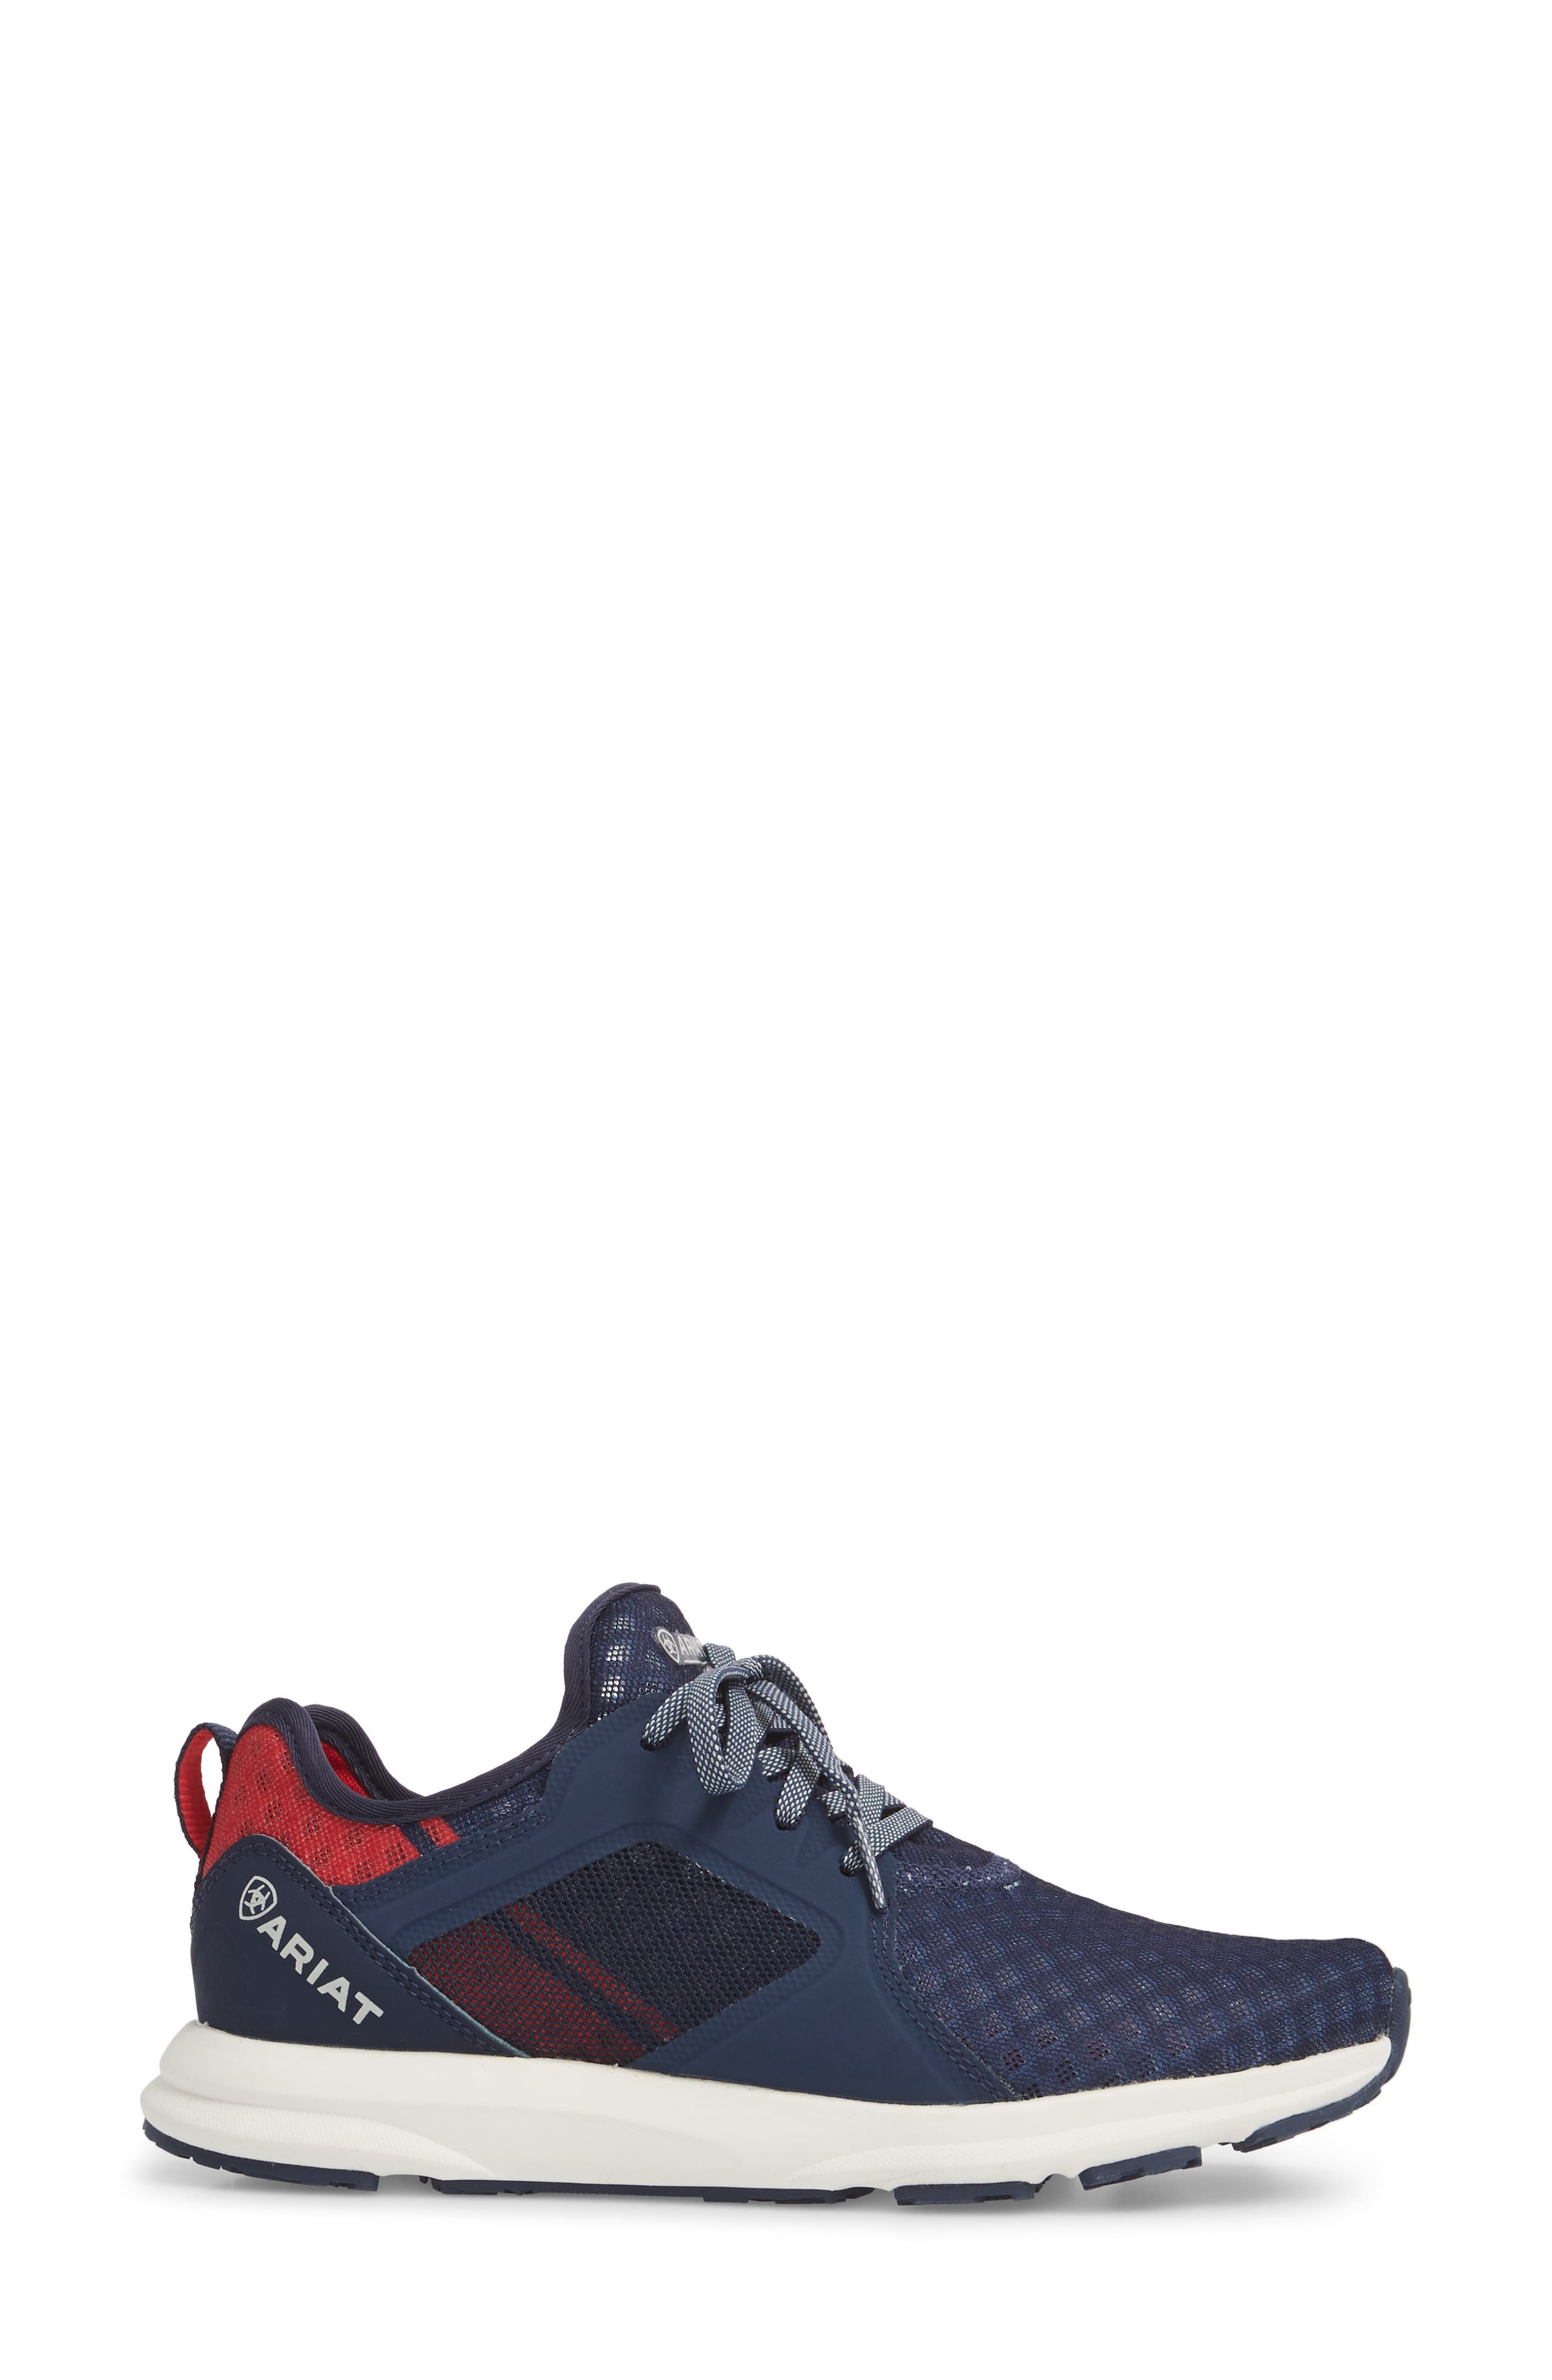 Fuse Print Sneaker,                             Alternate thumbnail 3, color,                             TEAM NAVY FABRIC